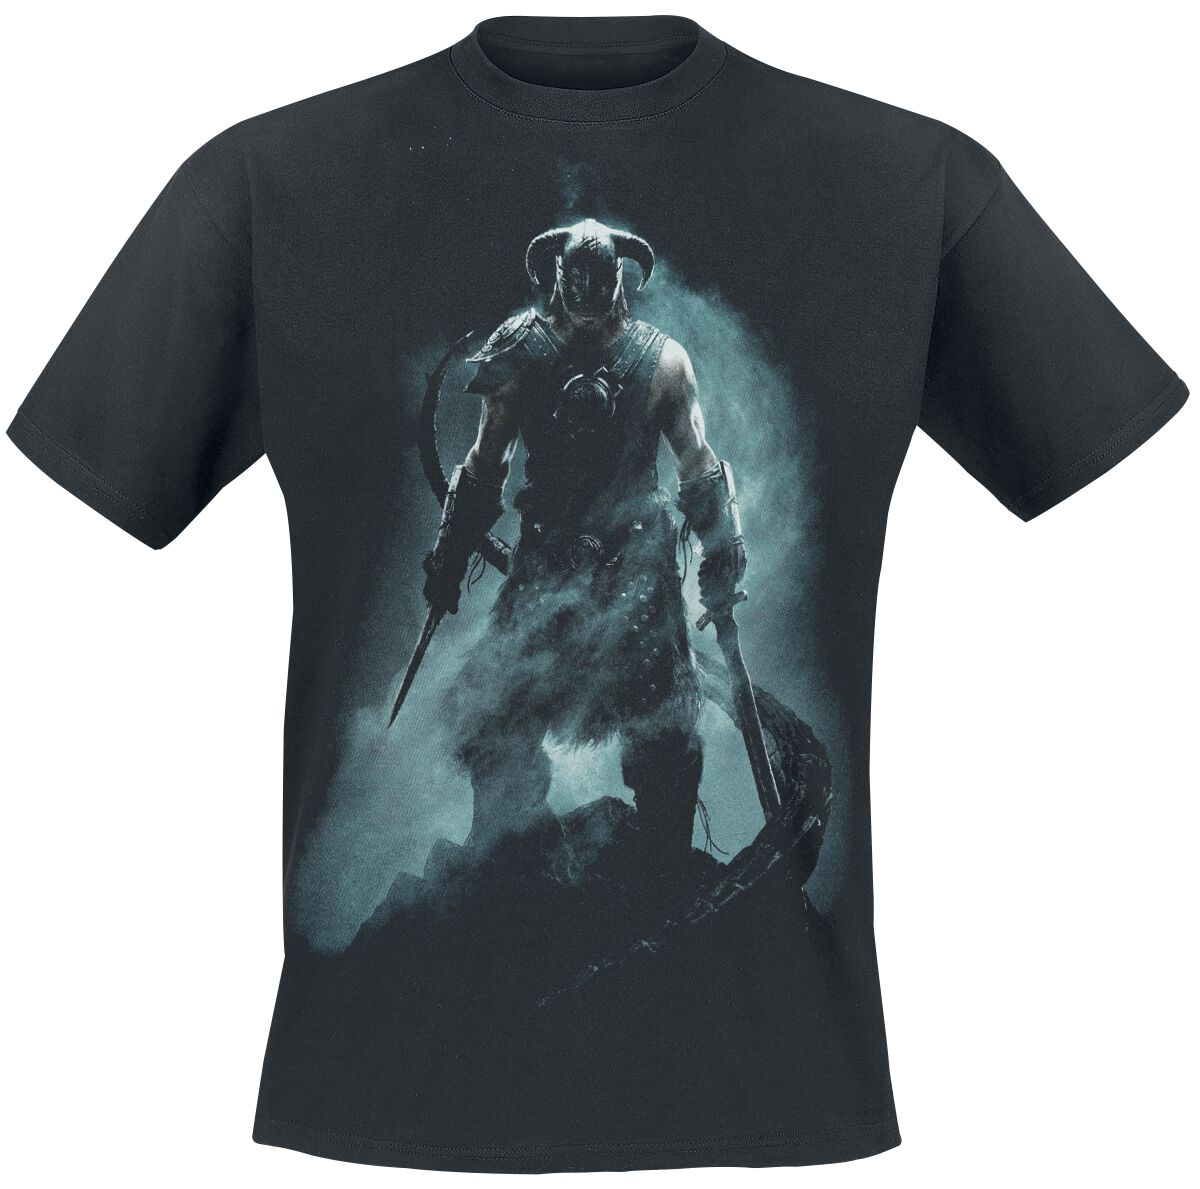 8e444f09 V: Skyrim - Dragonborn | The Elder Scrolls T-Shirt | EMP